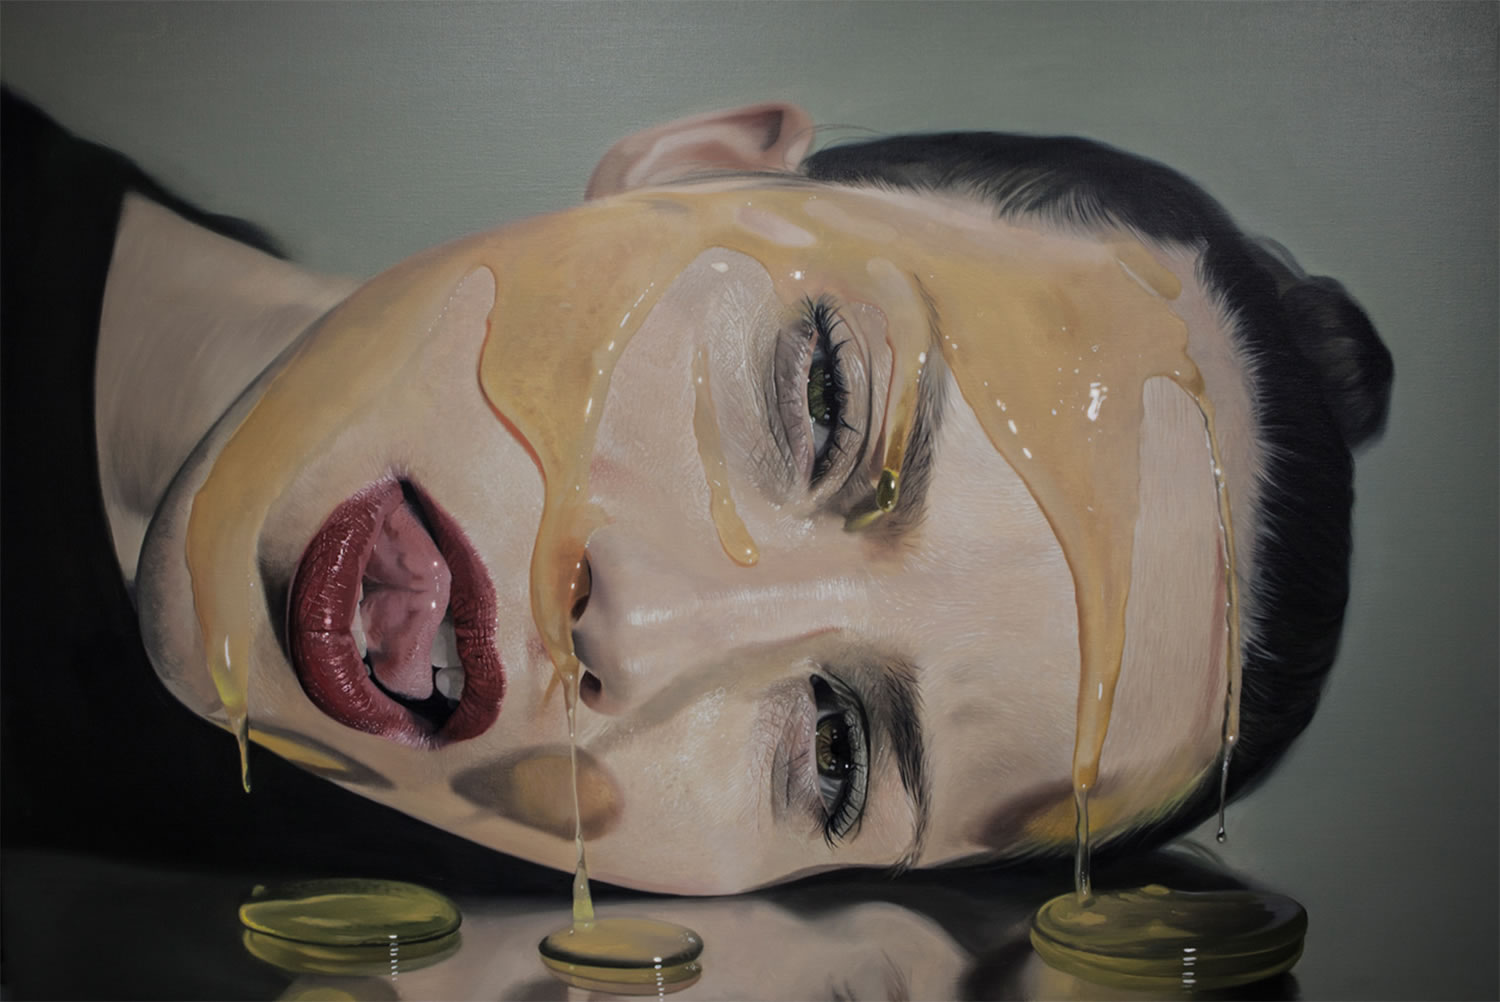 Sirup, painting series by mike dargas. Woman's head on the table